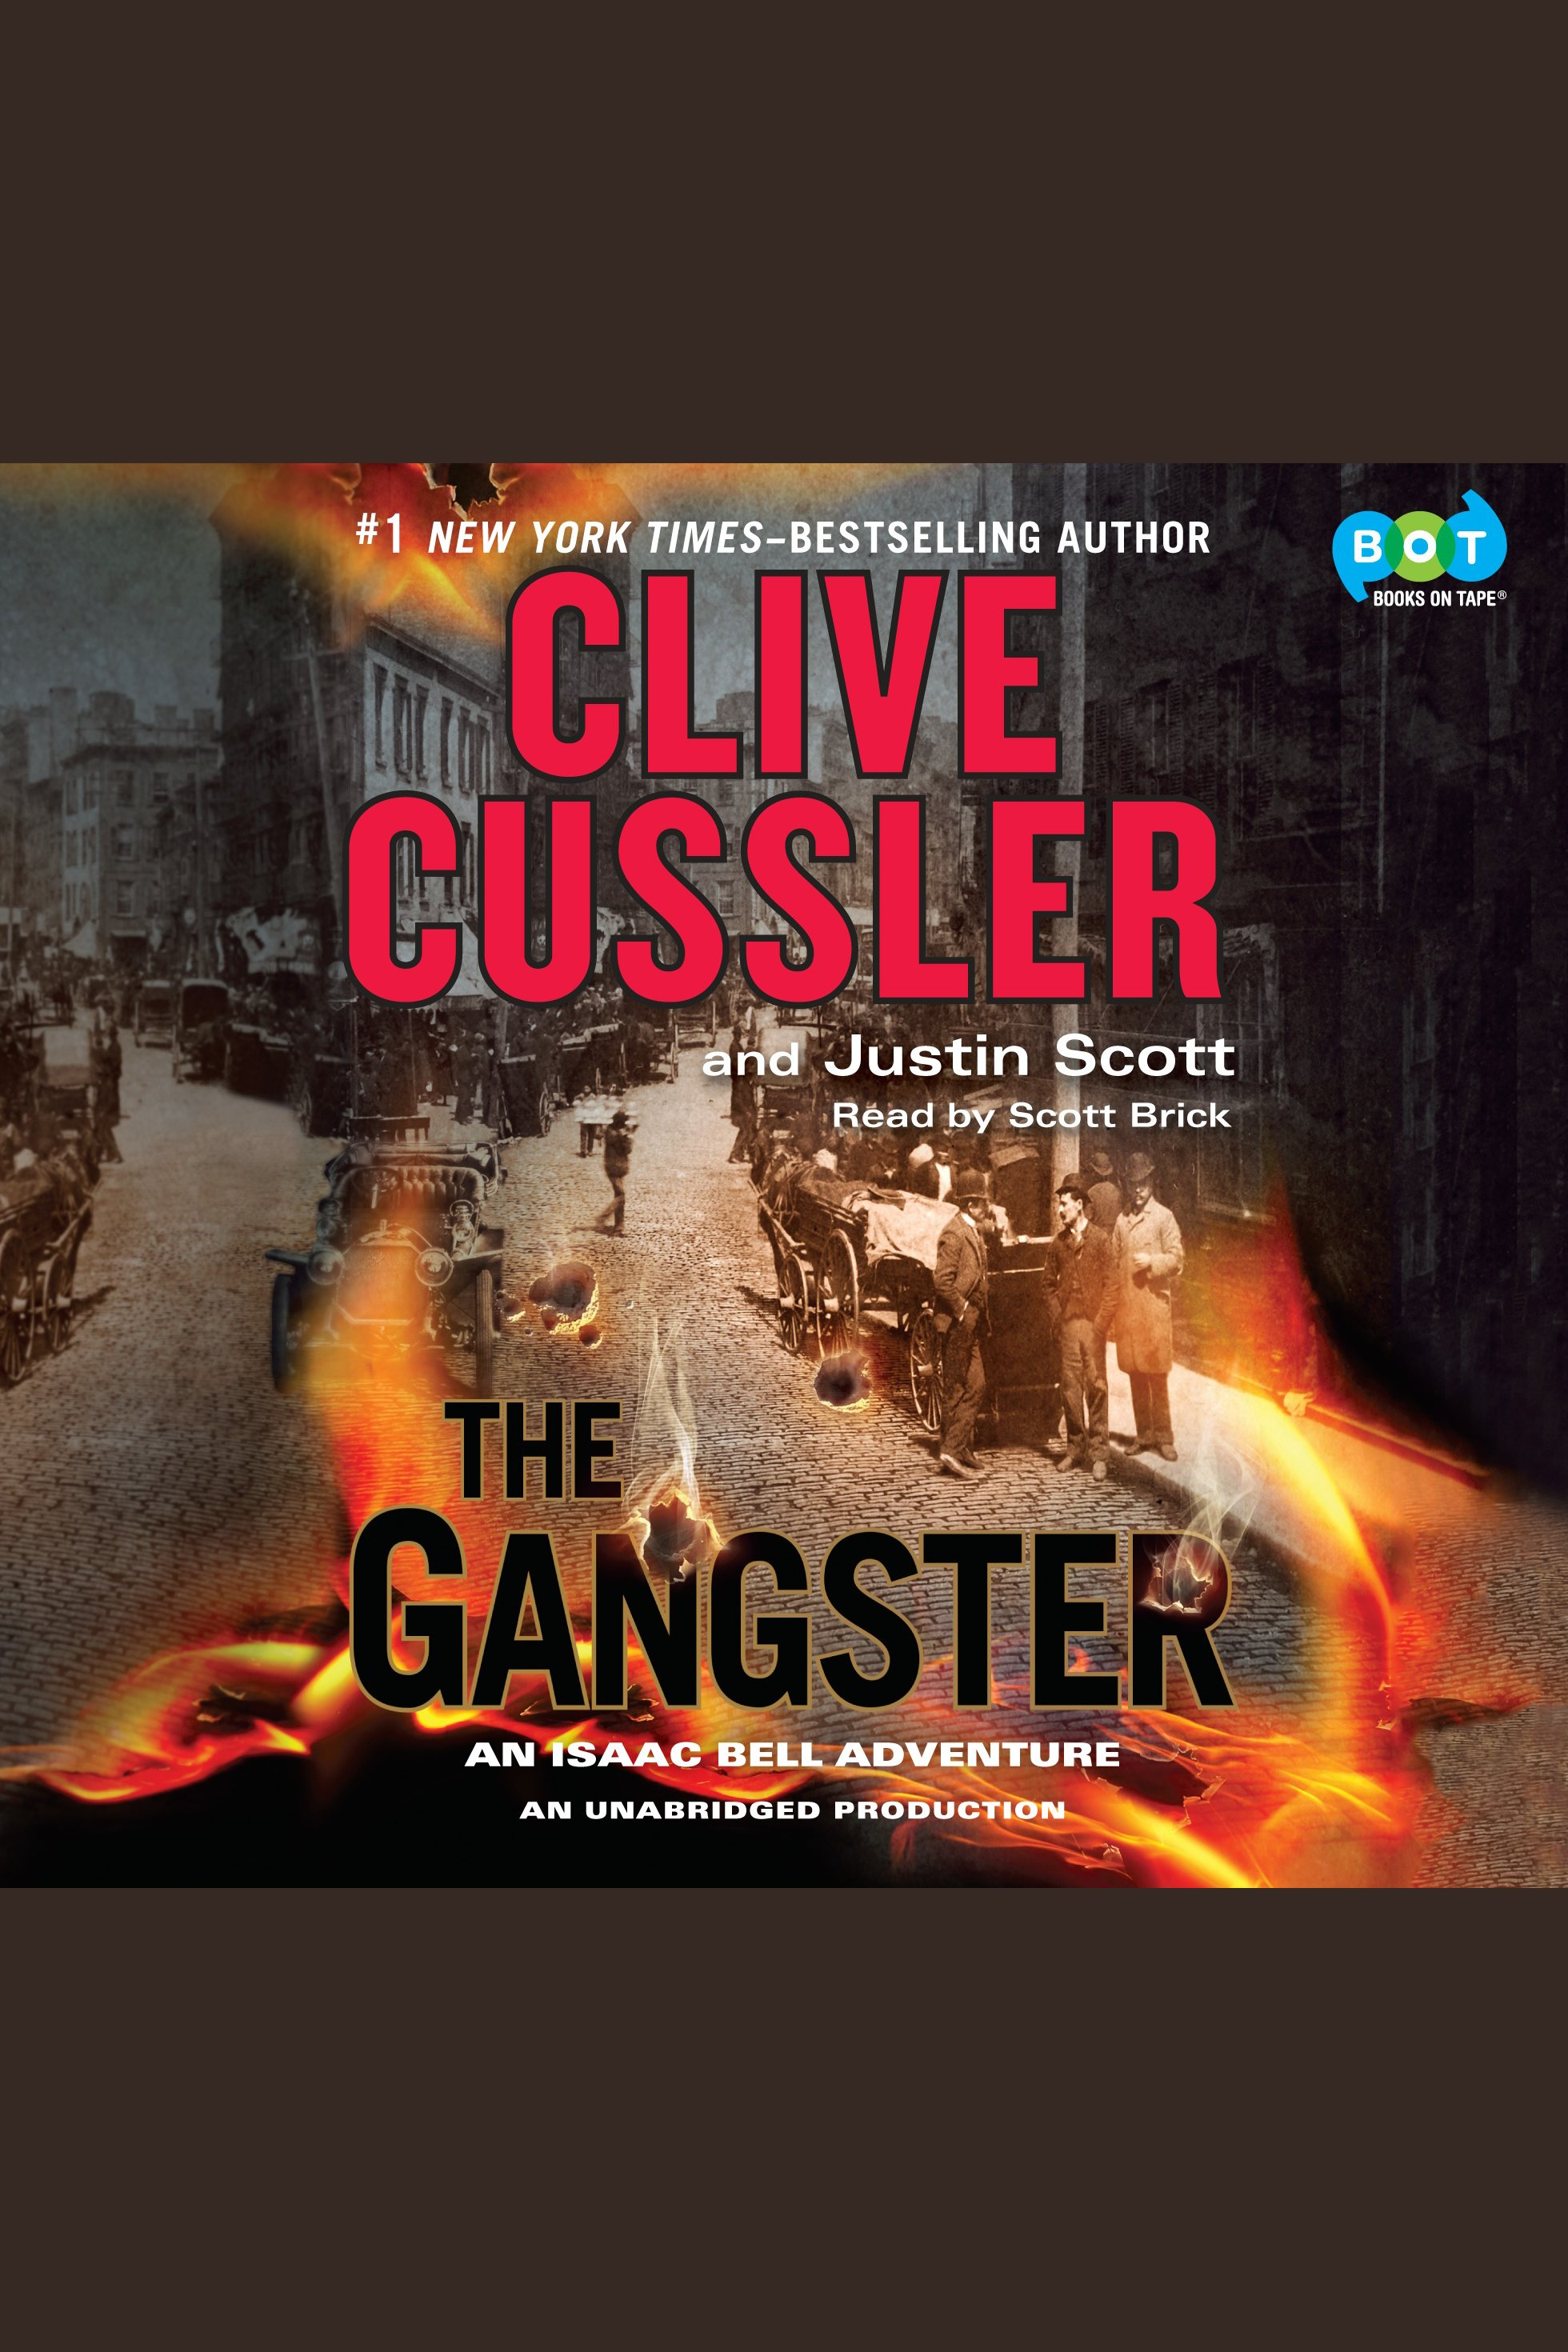 The gangster cover image